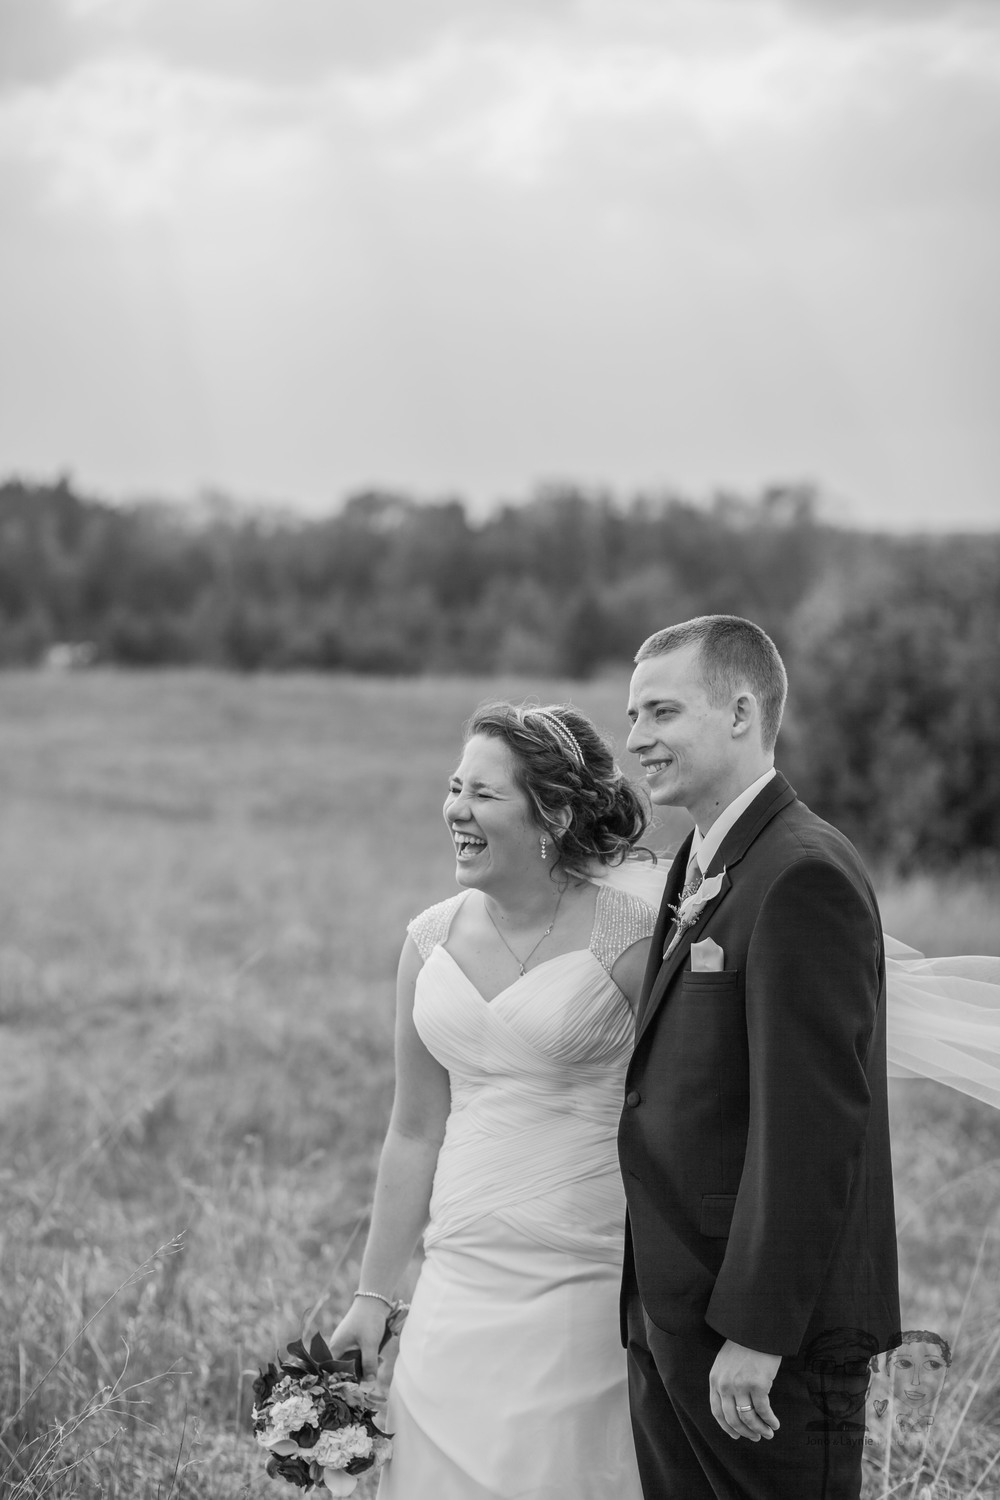 38Toronto Wedding Photographers and Videographers-Jono & Laynie Co.-Orangeville Wedding.jpg